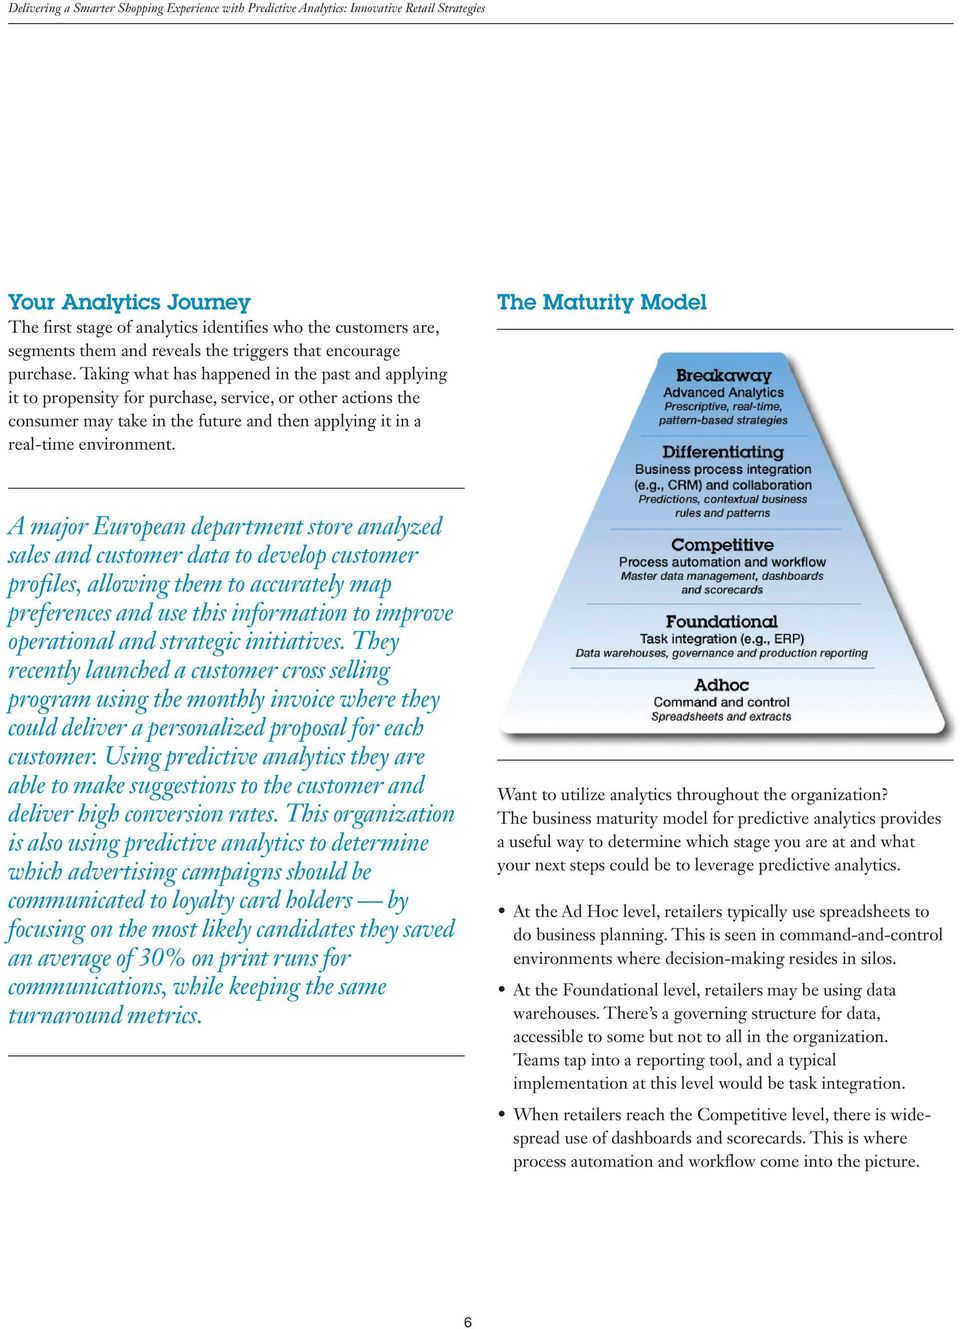 Taking what has happened in the past and applying it to propensity for purchase, service, or other actions the consumer may take in the future and then applying it in a real-time environment.